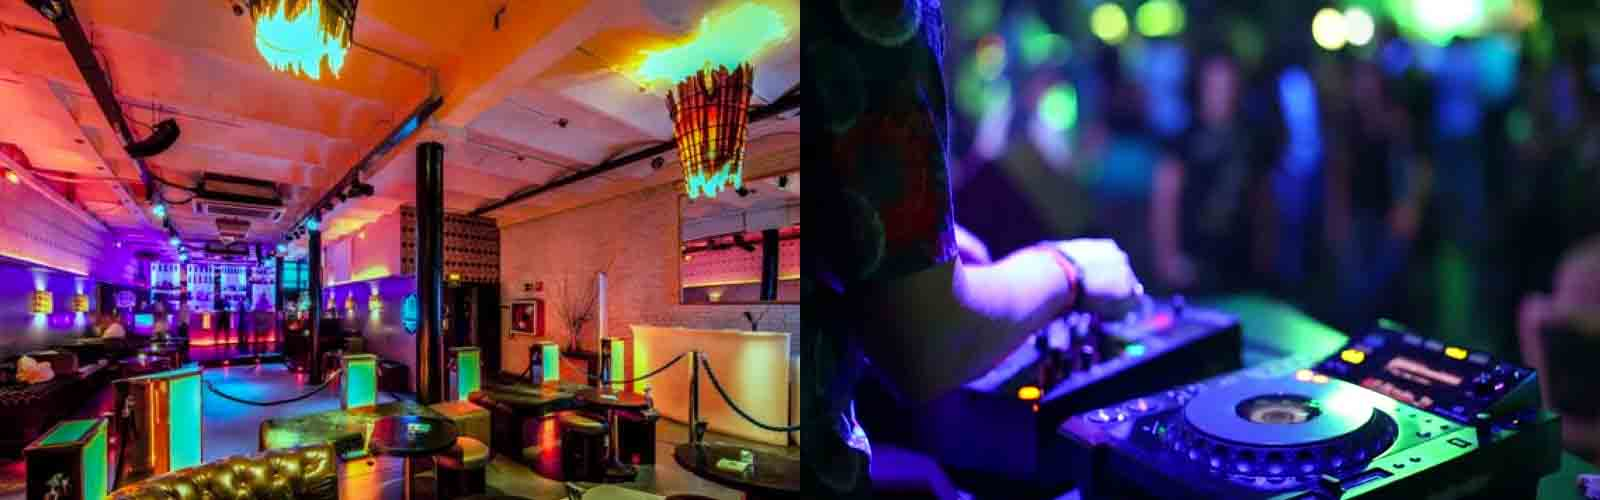 Dance on your favorite hits at Nightclub Les Enfants